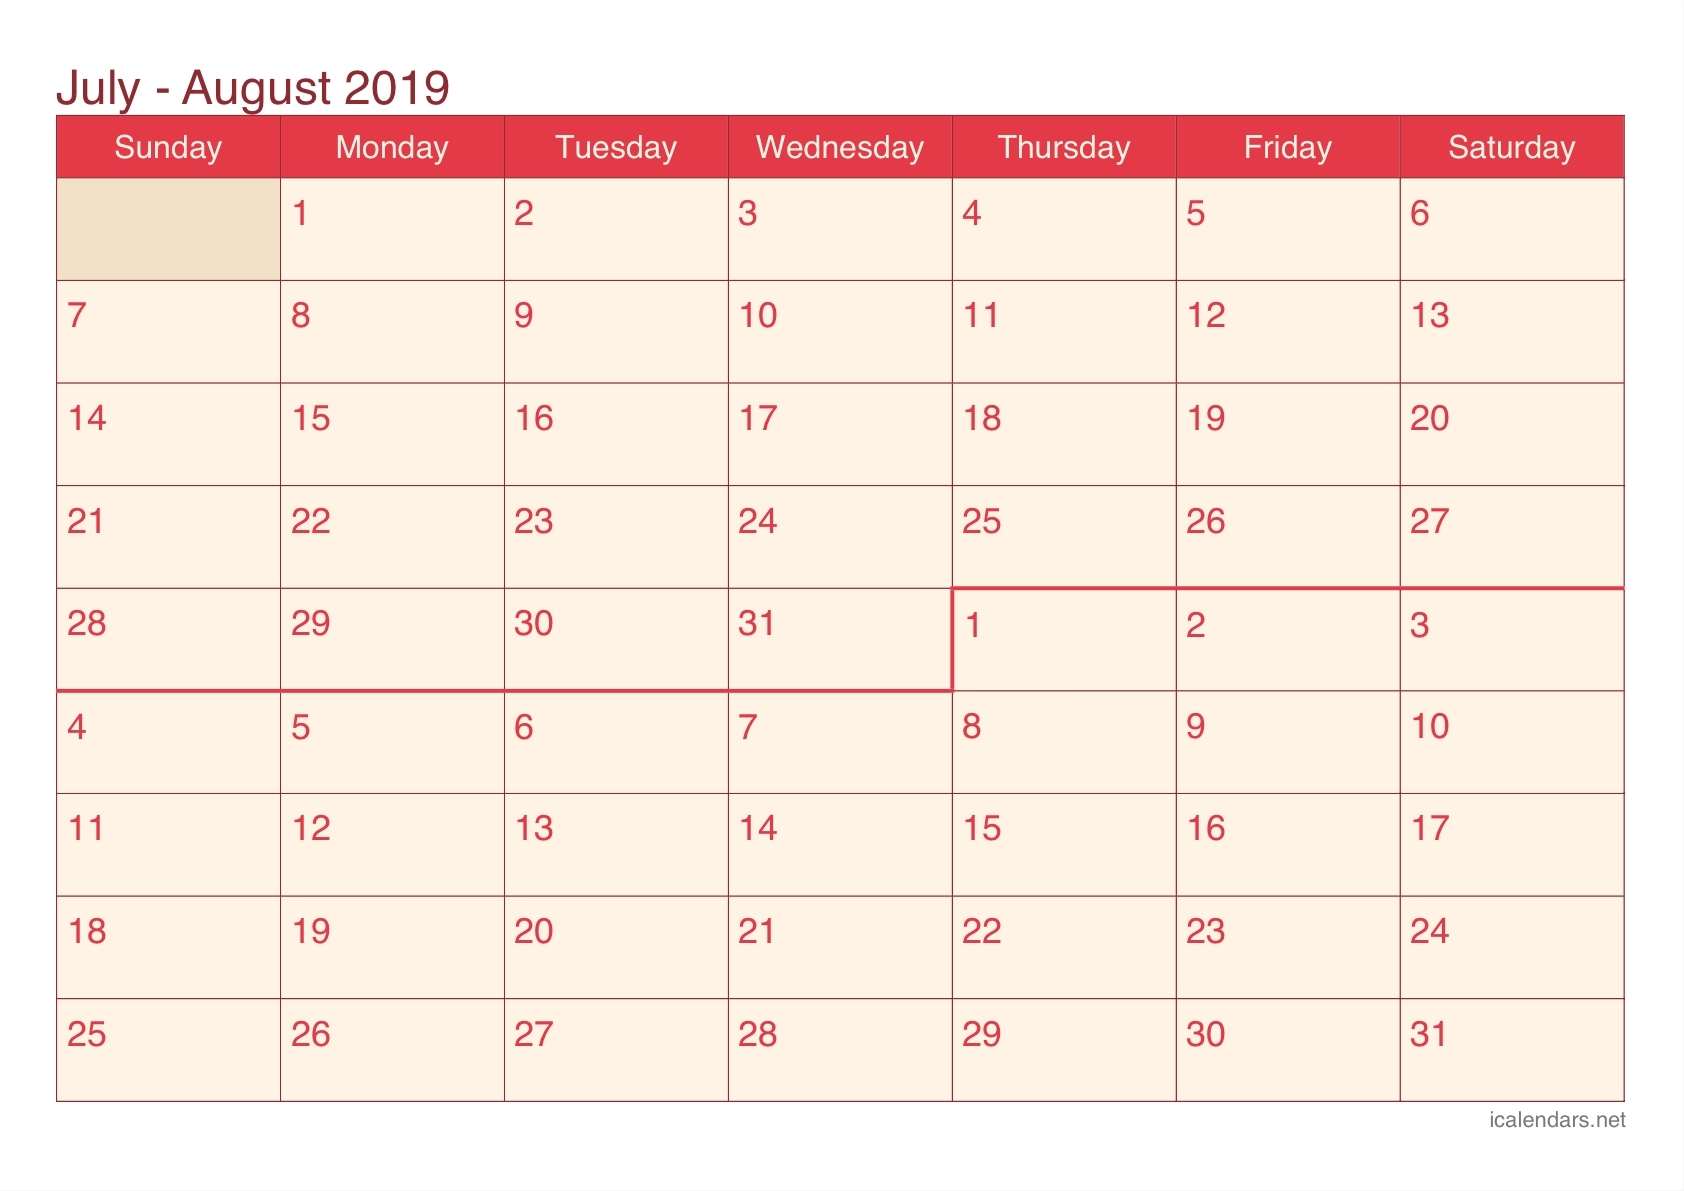 July And August Blank Calendar - Calendar Inspiration Design-Blank Chalender For Junejuly And August